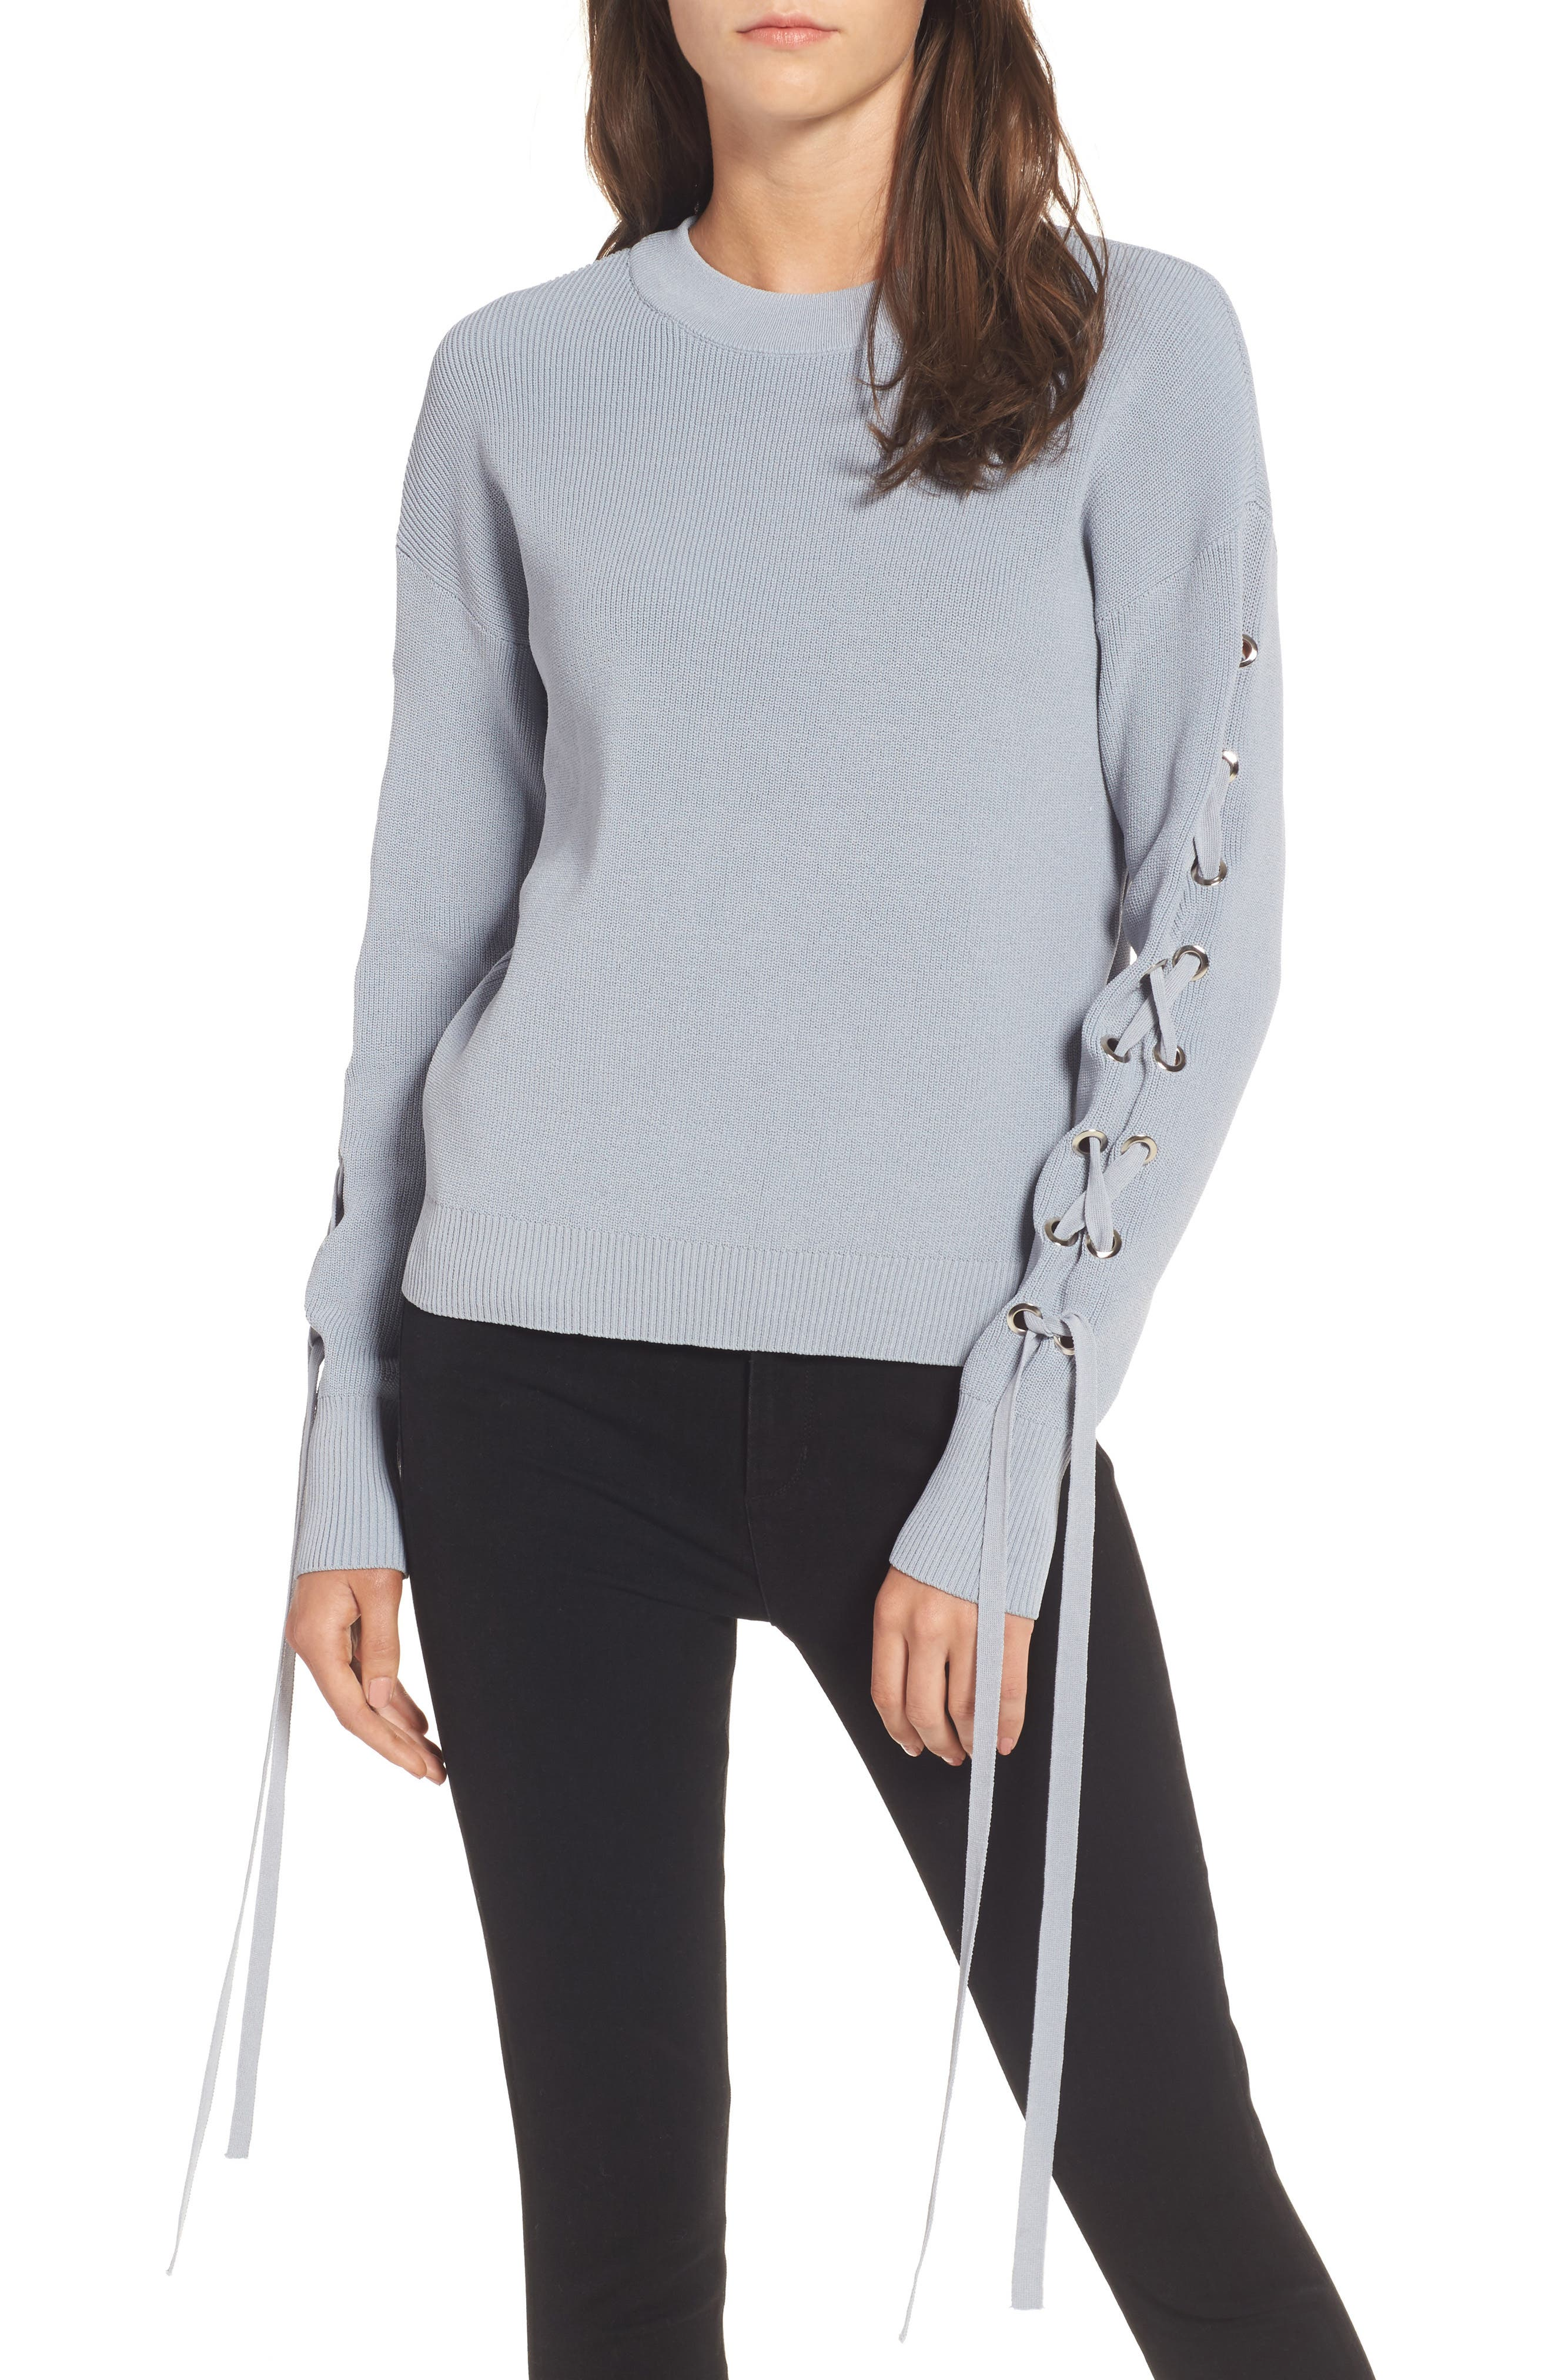 Alternate Image 1 Selected - J.O.A. Lace-Up Sleeve Sweater